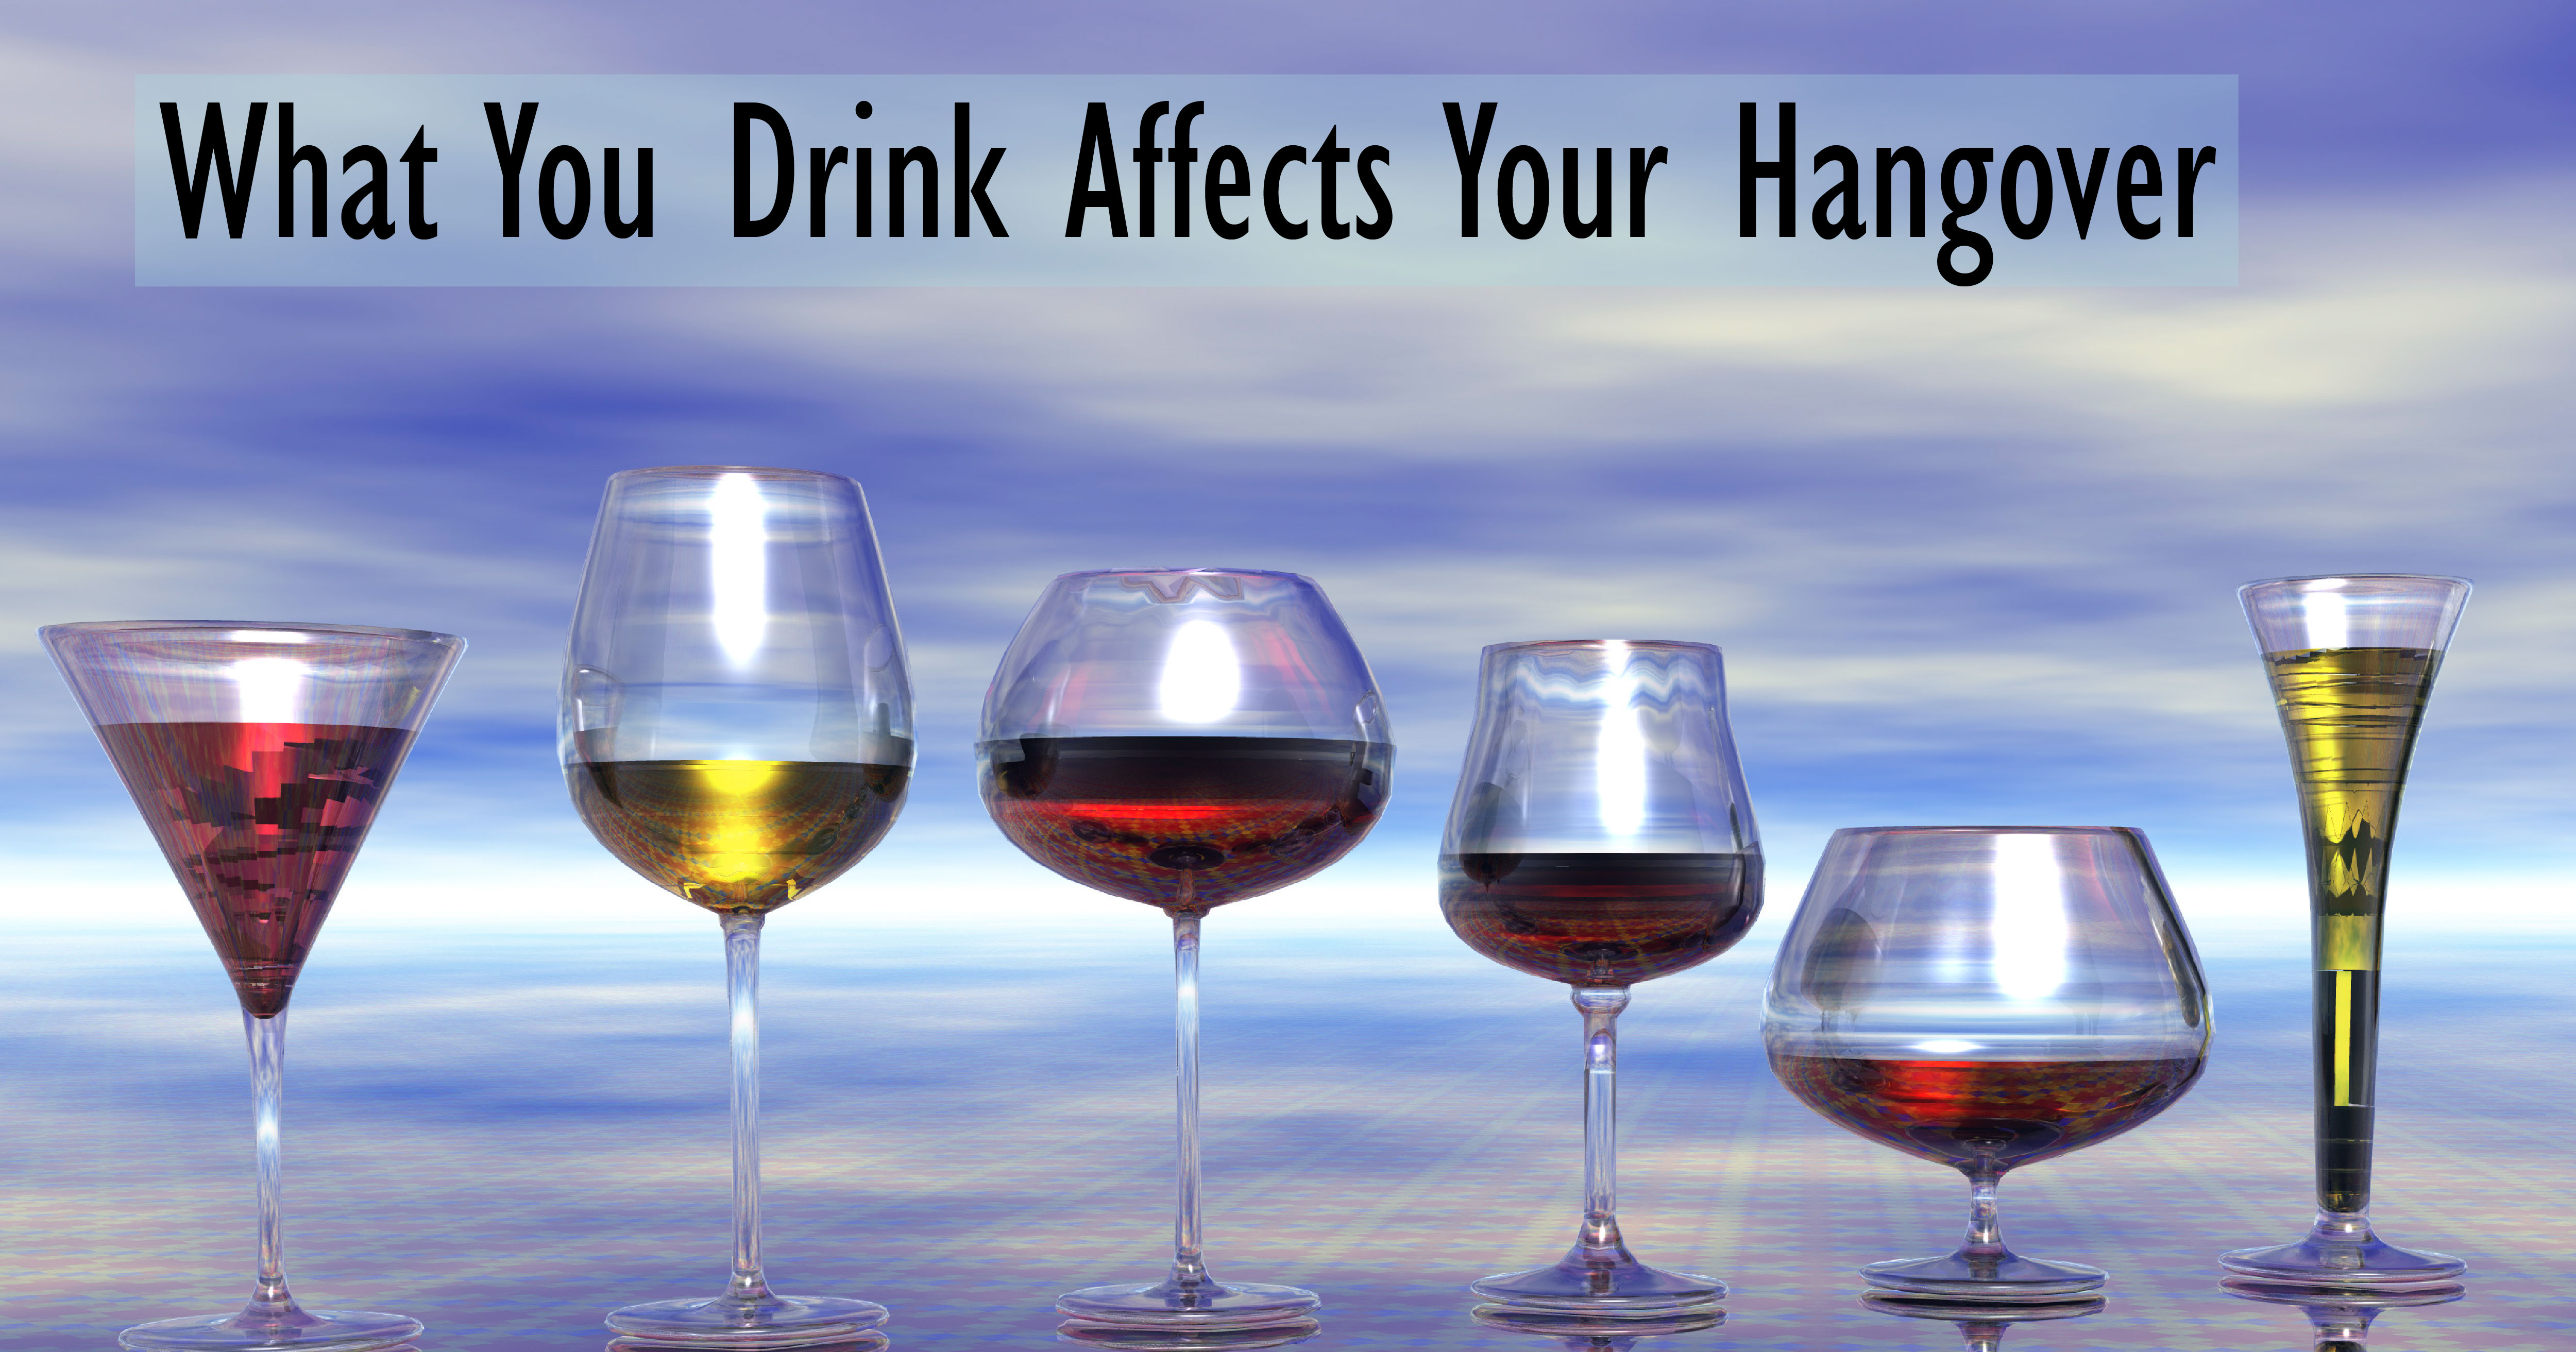 What You Drink Affects Your Hangover